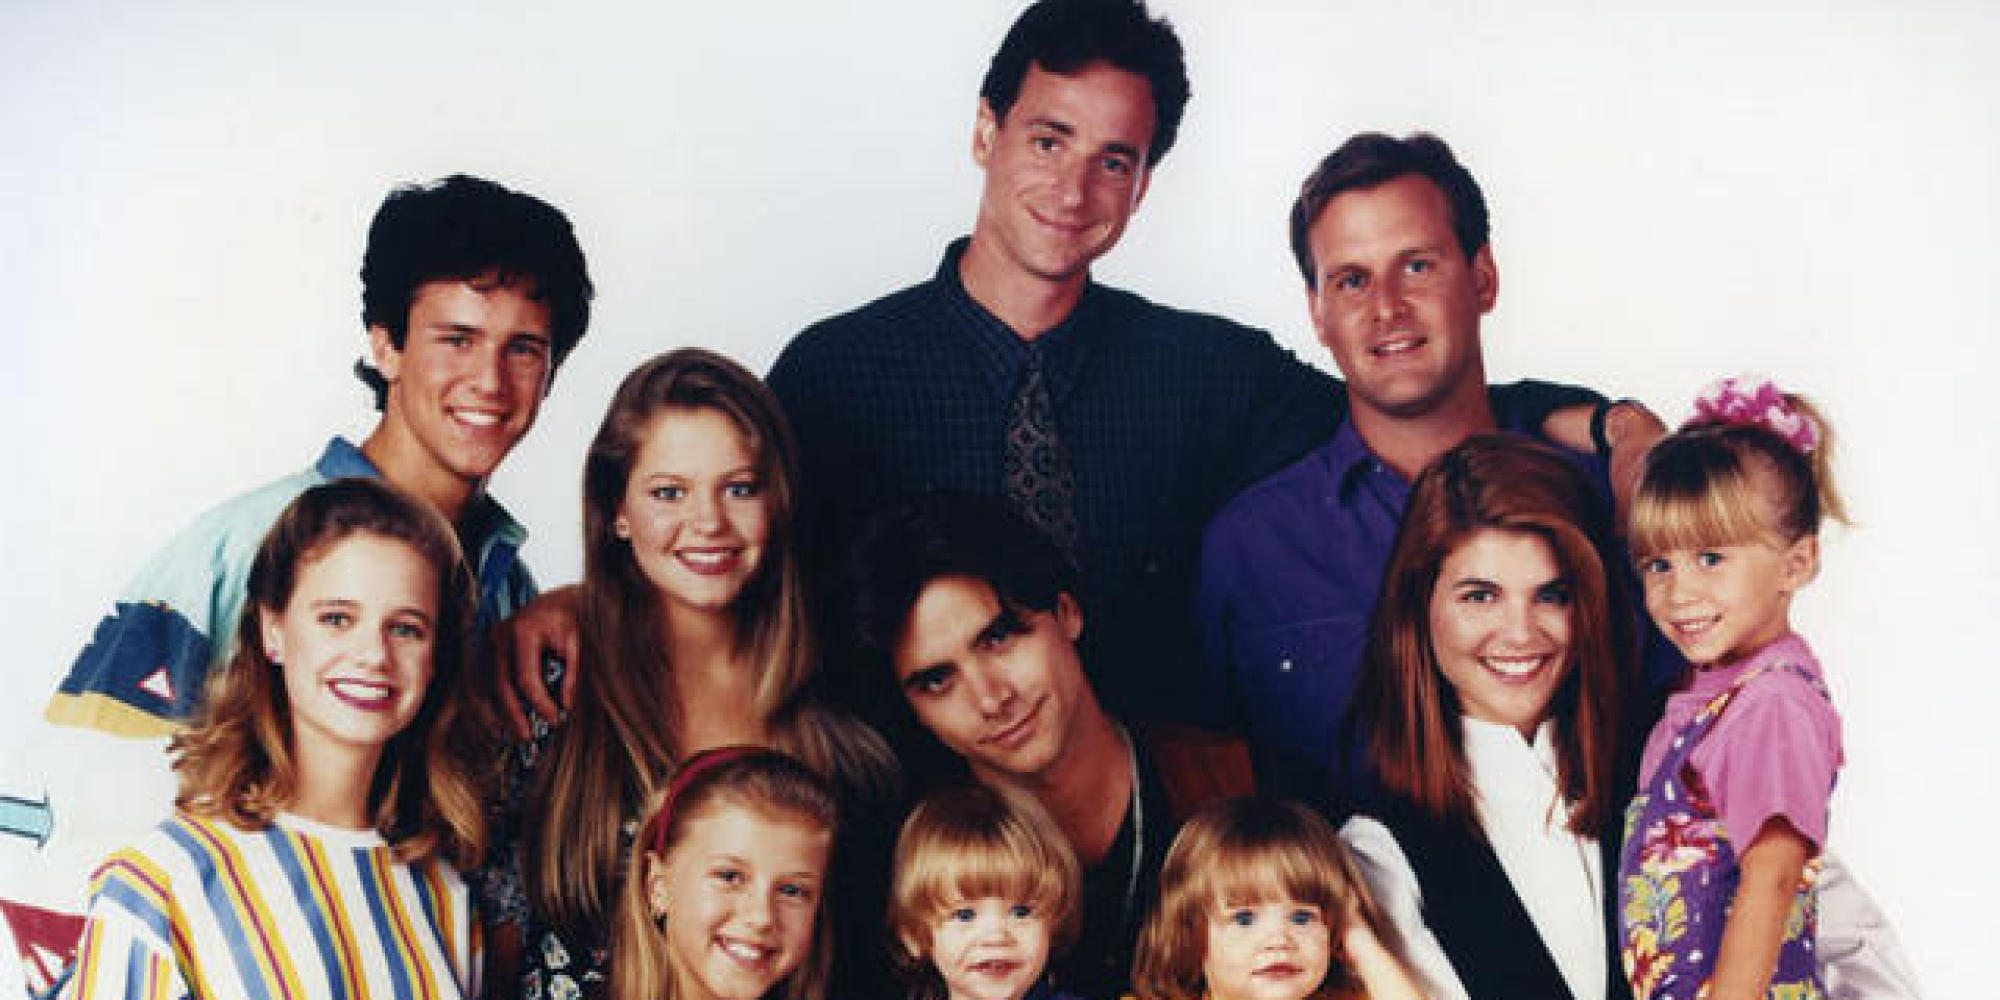 Video John Stamos Announces Full House Reboot is ing to